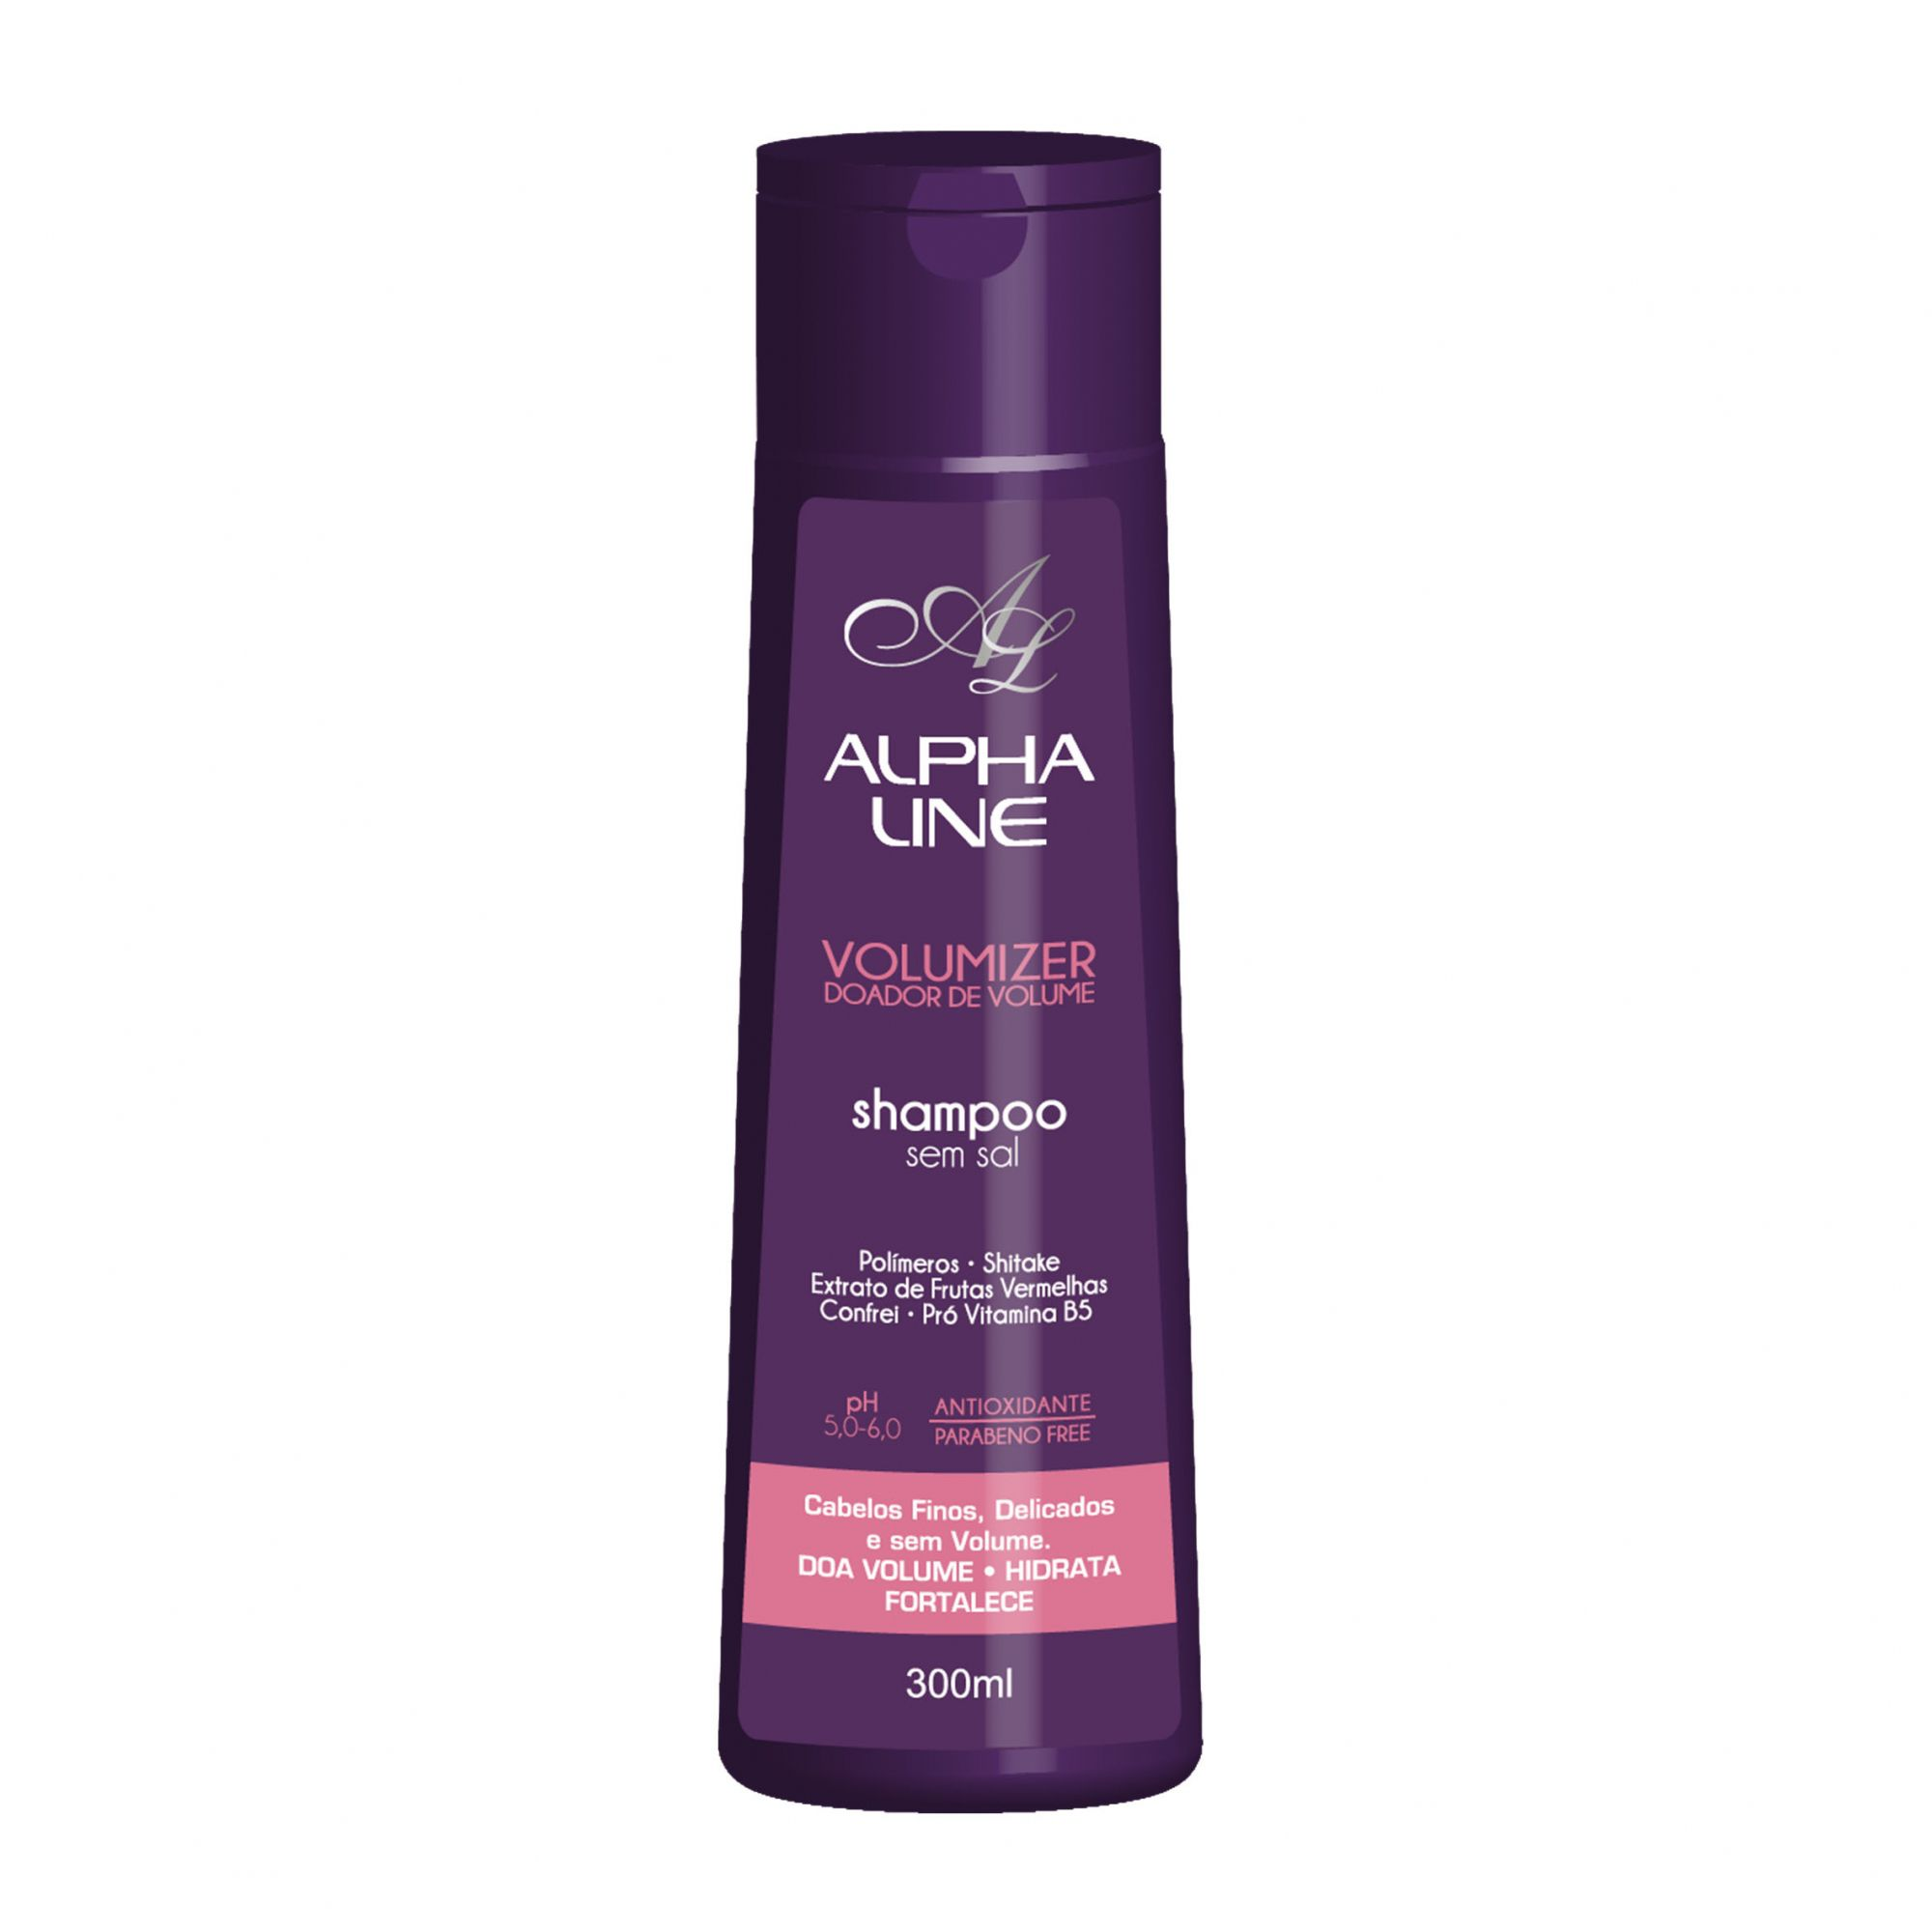 Shampoo Volumizer Doador de Volume 300ml Alpha Line